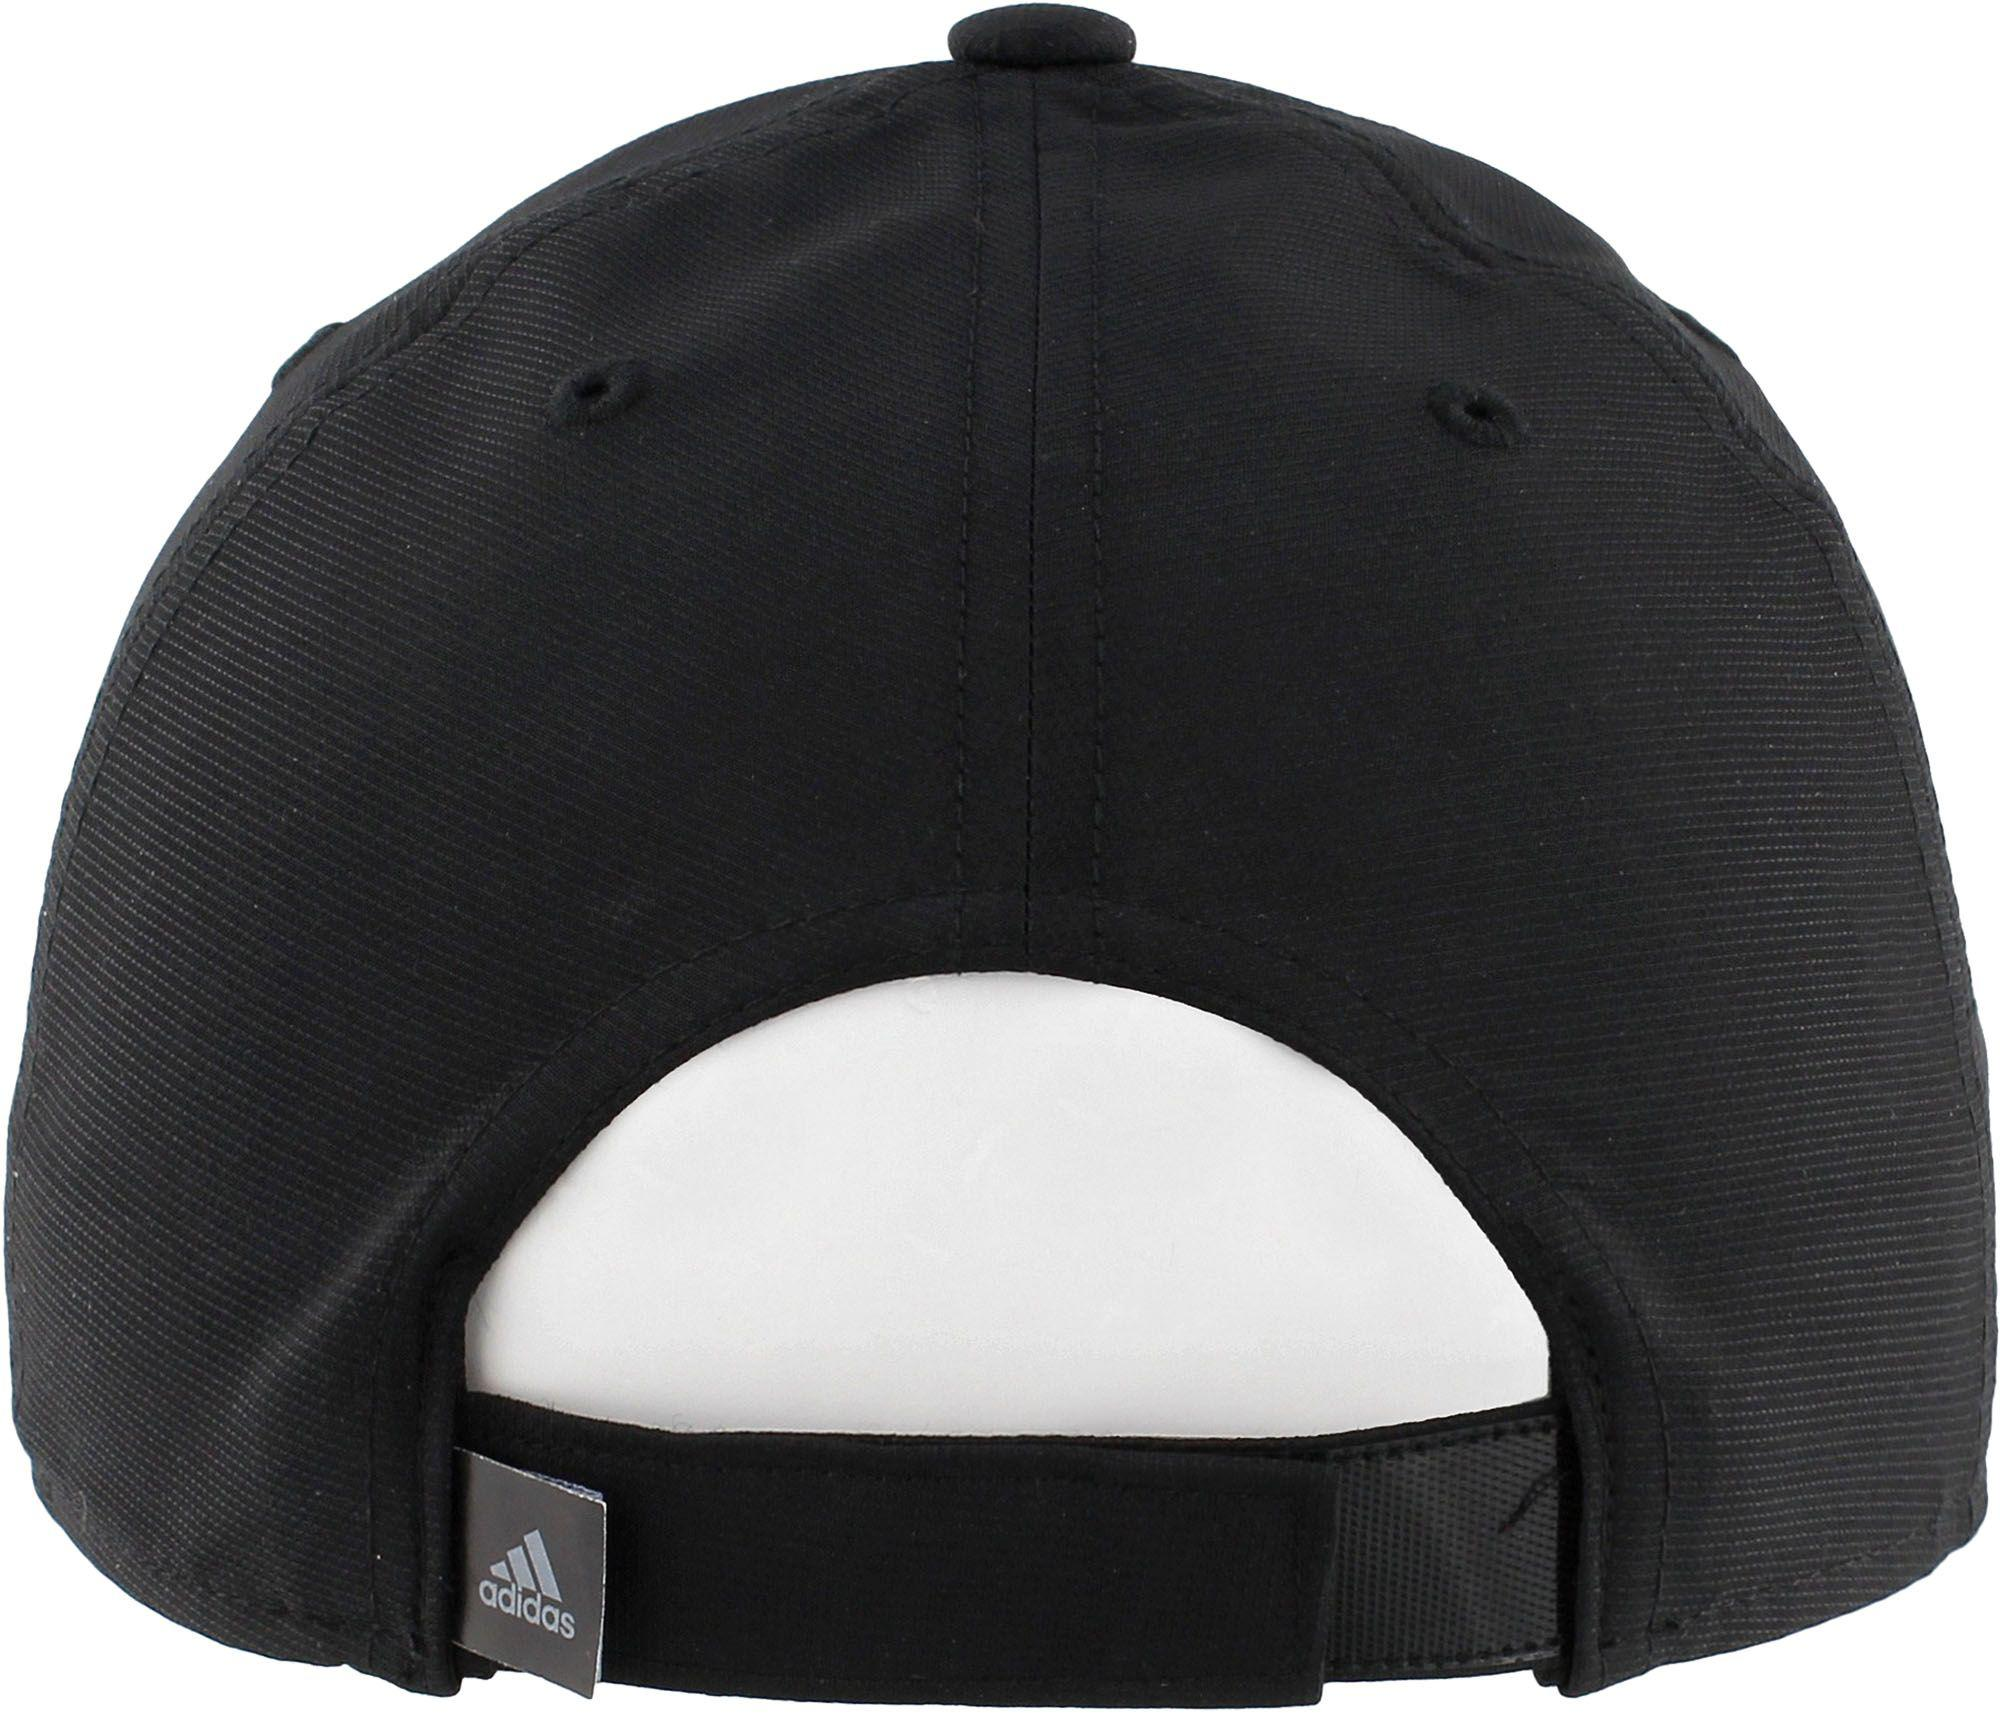 9994ee9fa44 Adidas - Black Decision Hat for Men - Lyst. View fullscreen